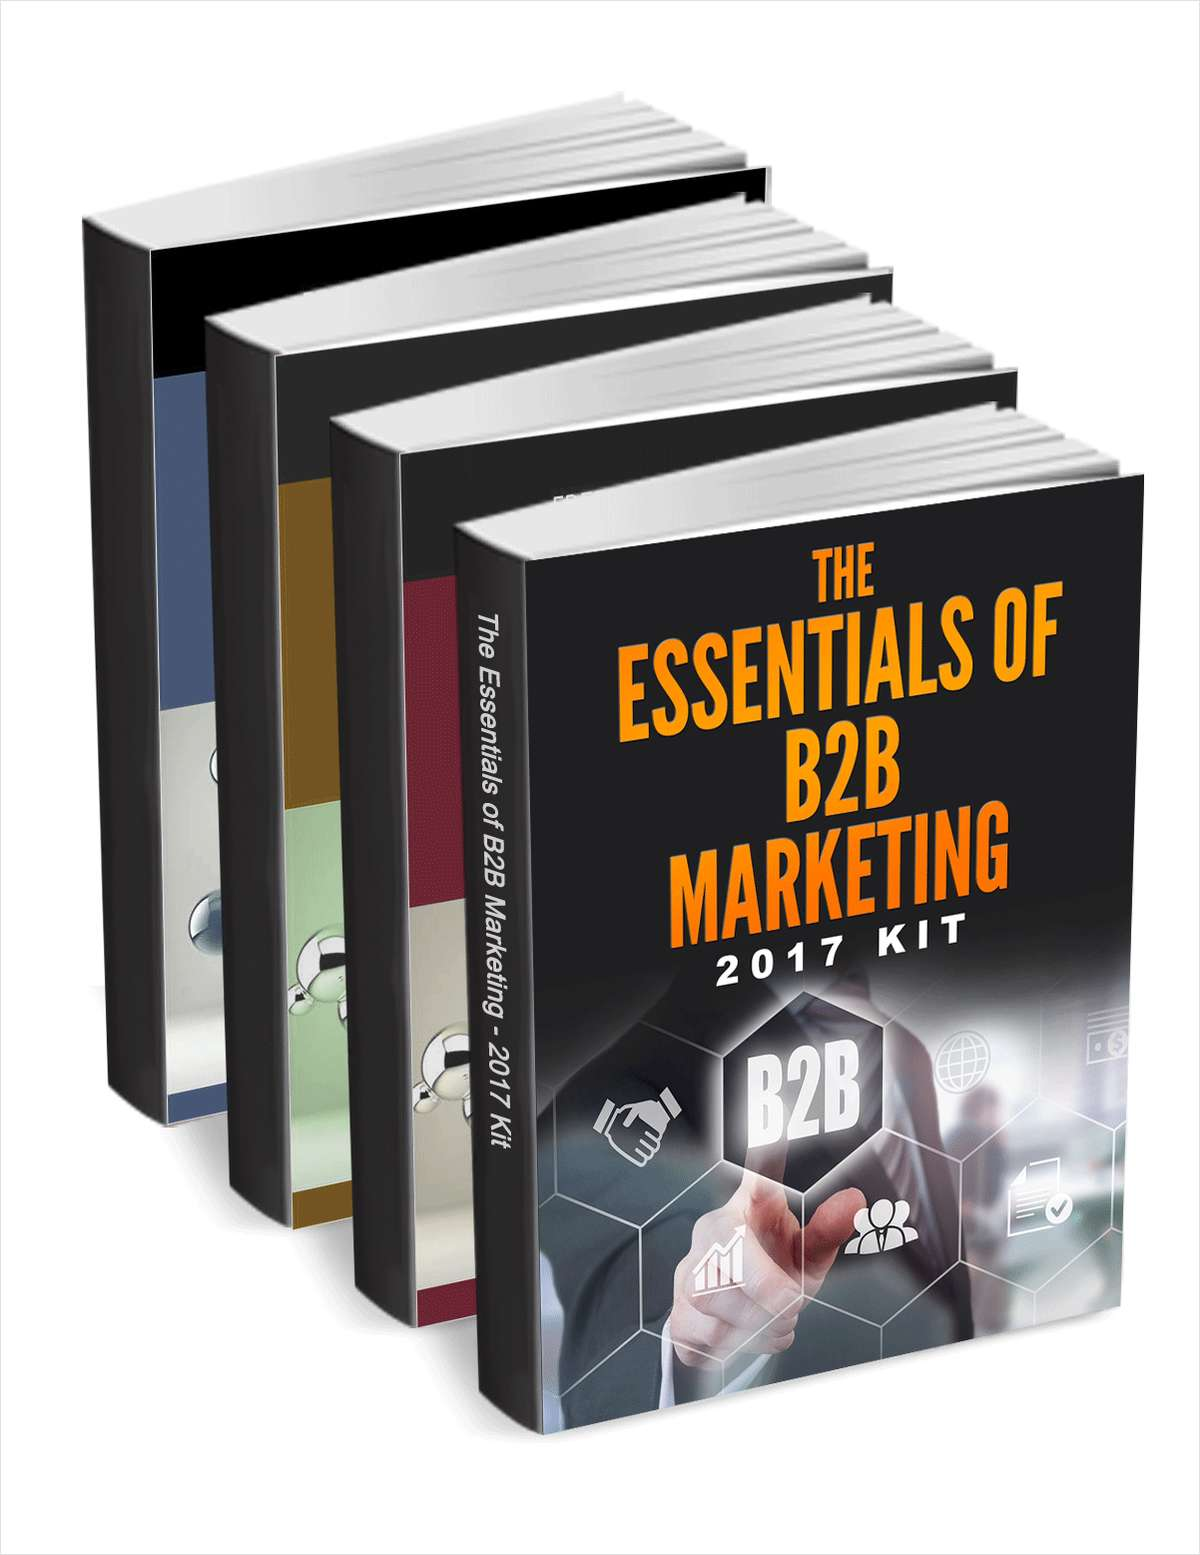 The Essentials of B2B Marketing - Spring 2016 Kit